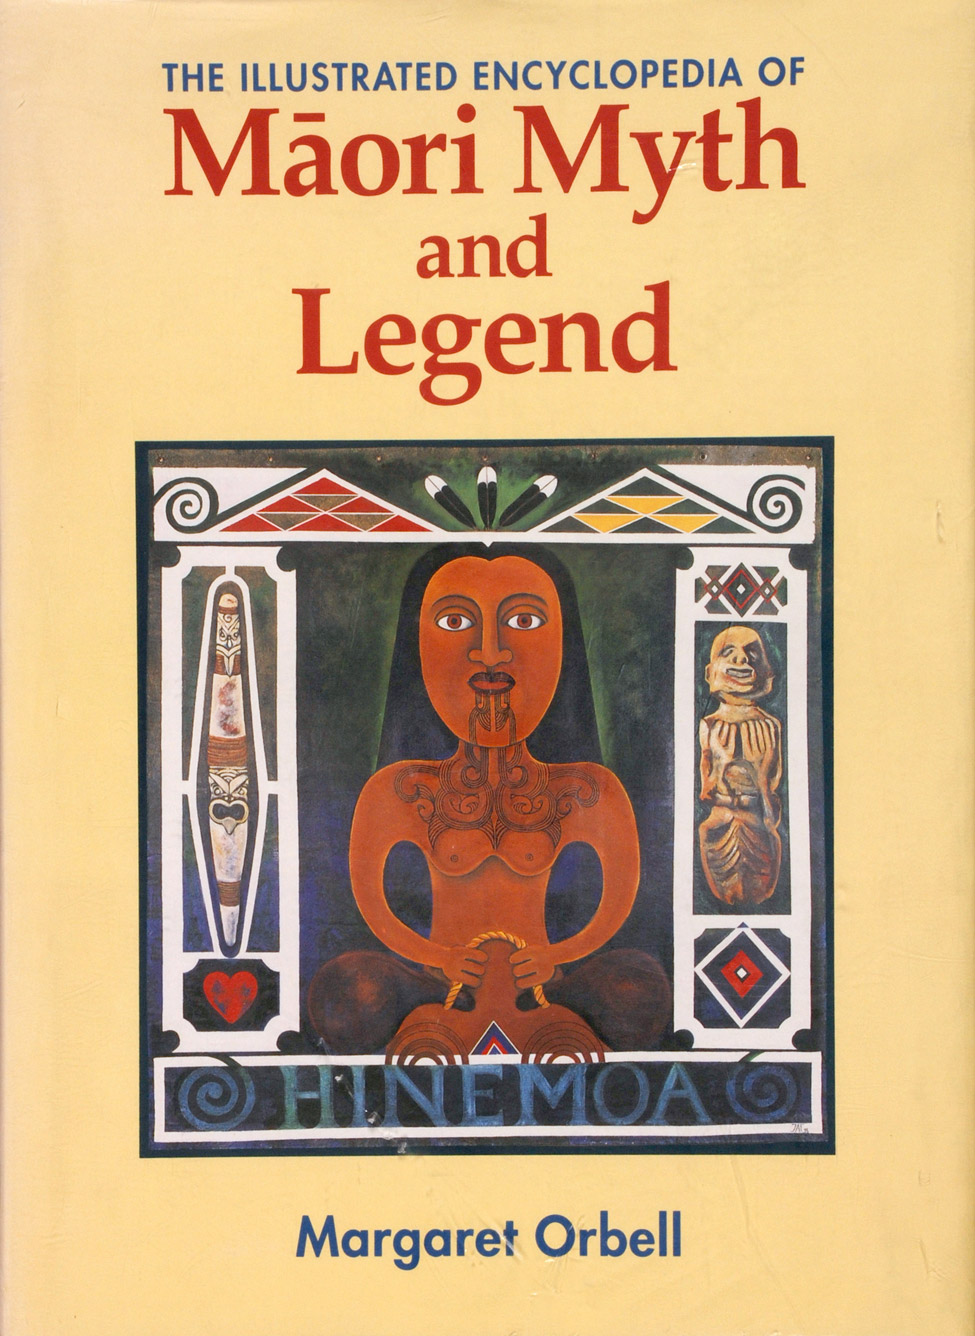 Margaret Orbell. <i>The Illustrated Encyclopedia of Māori Myth and Legend. </i>Christchurch: Canterbury University Press, 1995.